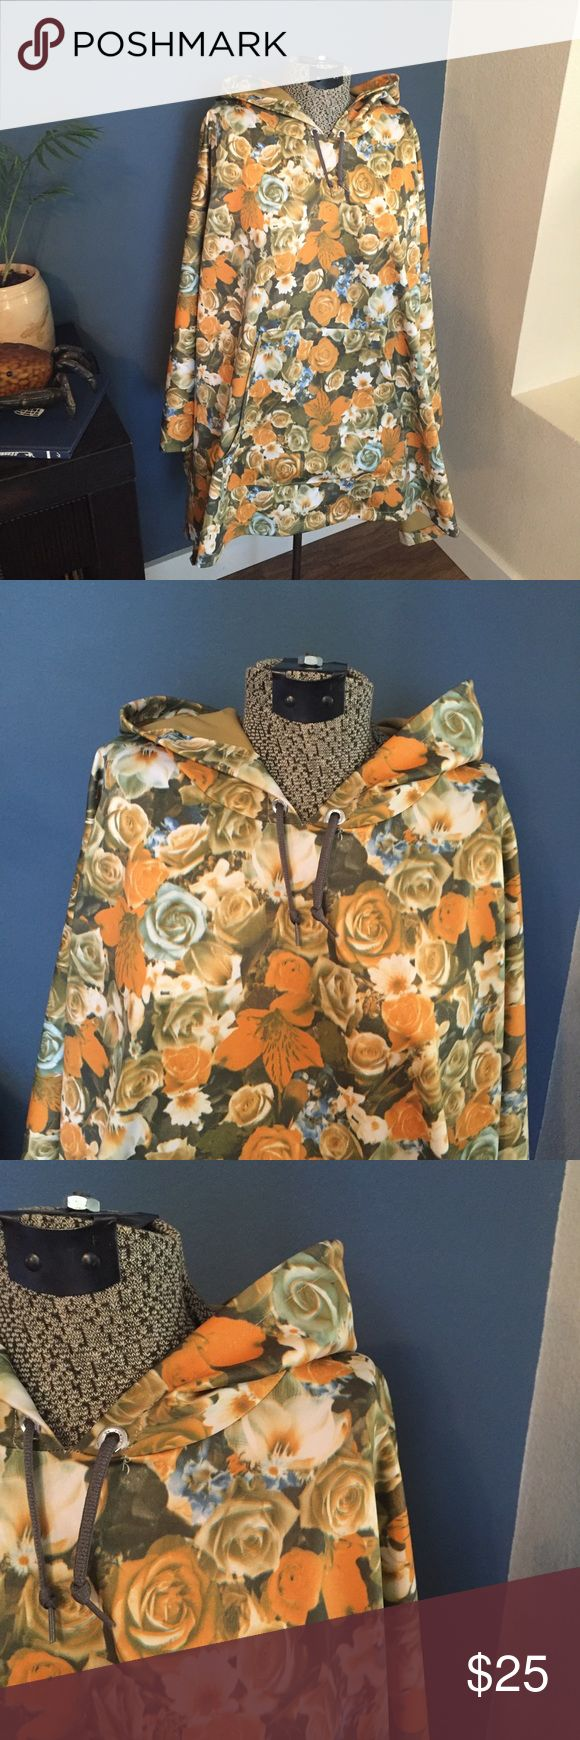 Floral poncho Real deal heavy duty poncho with front pocket. Perfect condition. Warm and water proof. Jackets & Coats Capes